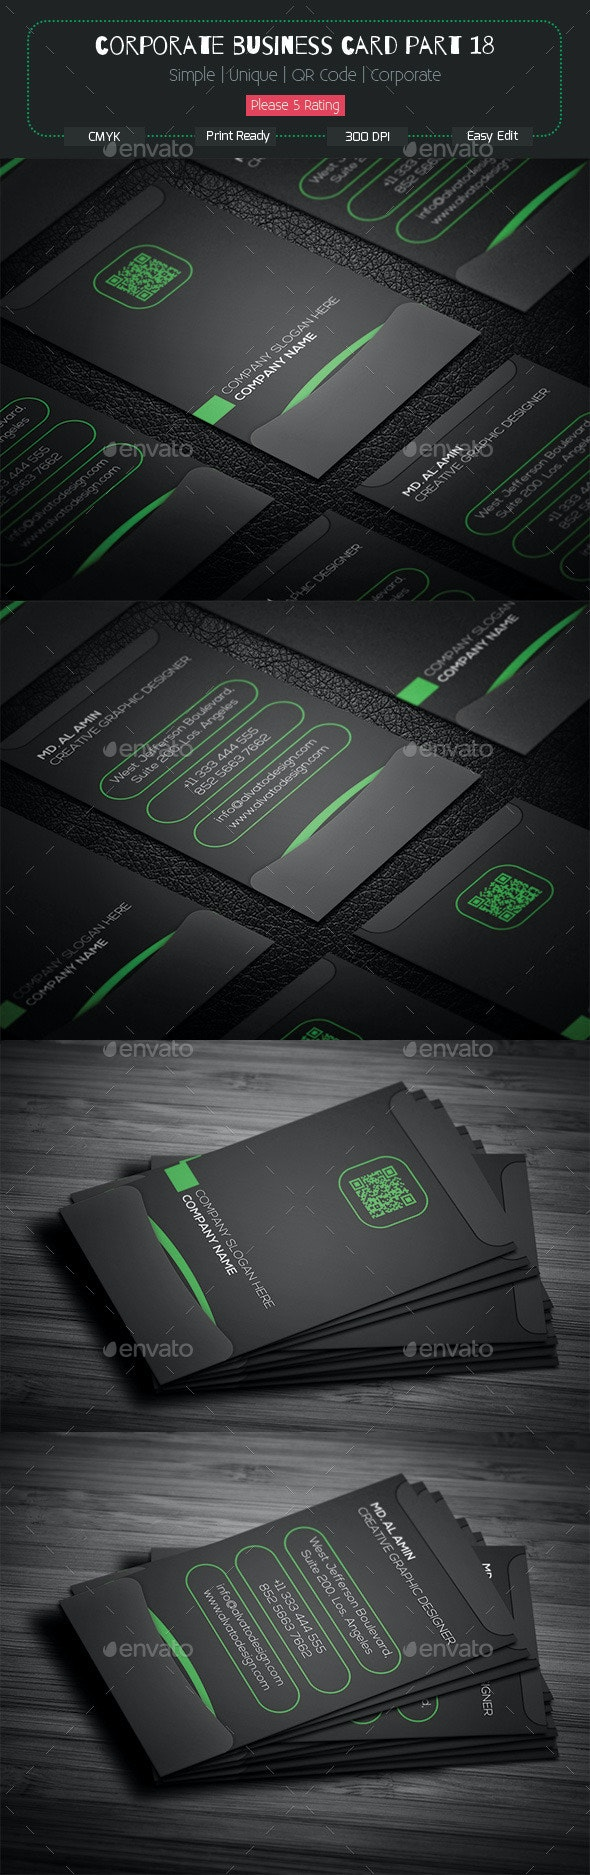 Corporate Business Card Part 18 - Corporate Business Cards